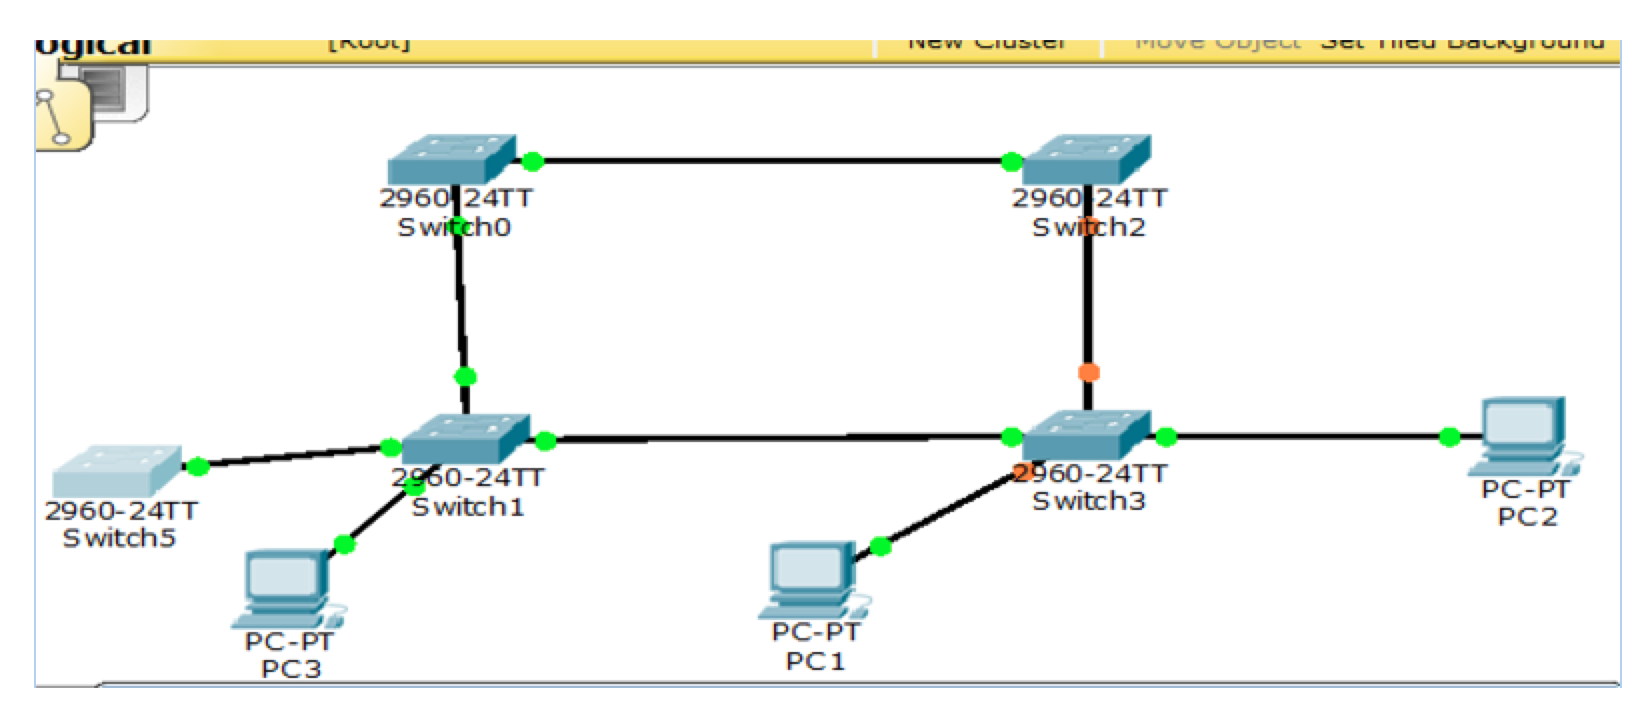 Routers Solutions Cisco 2960 S Diagram And Catalyst Switches Comparison My Question Here Is If Each Time We Add A New Switch There Will Be This Issuethen How Can Prevent That Especially The Existing Environment Has